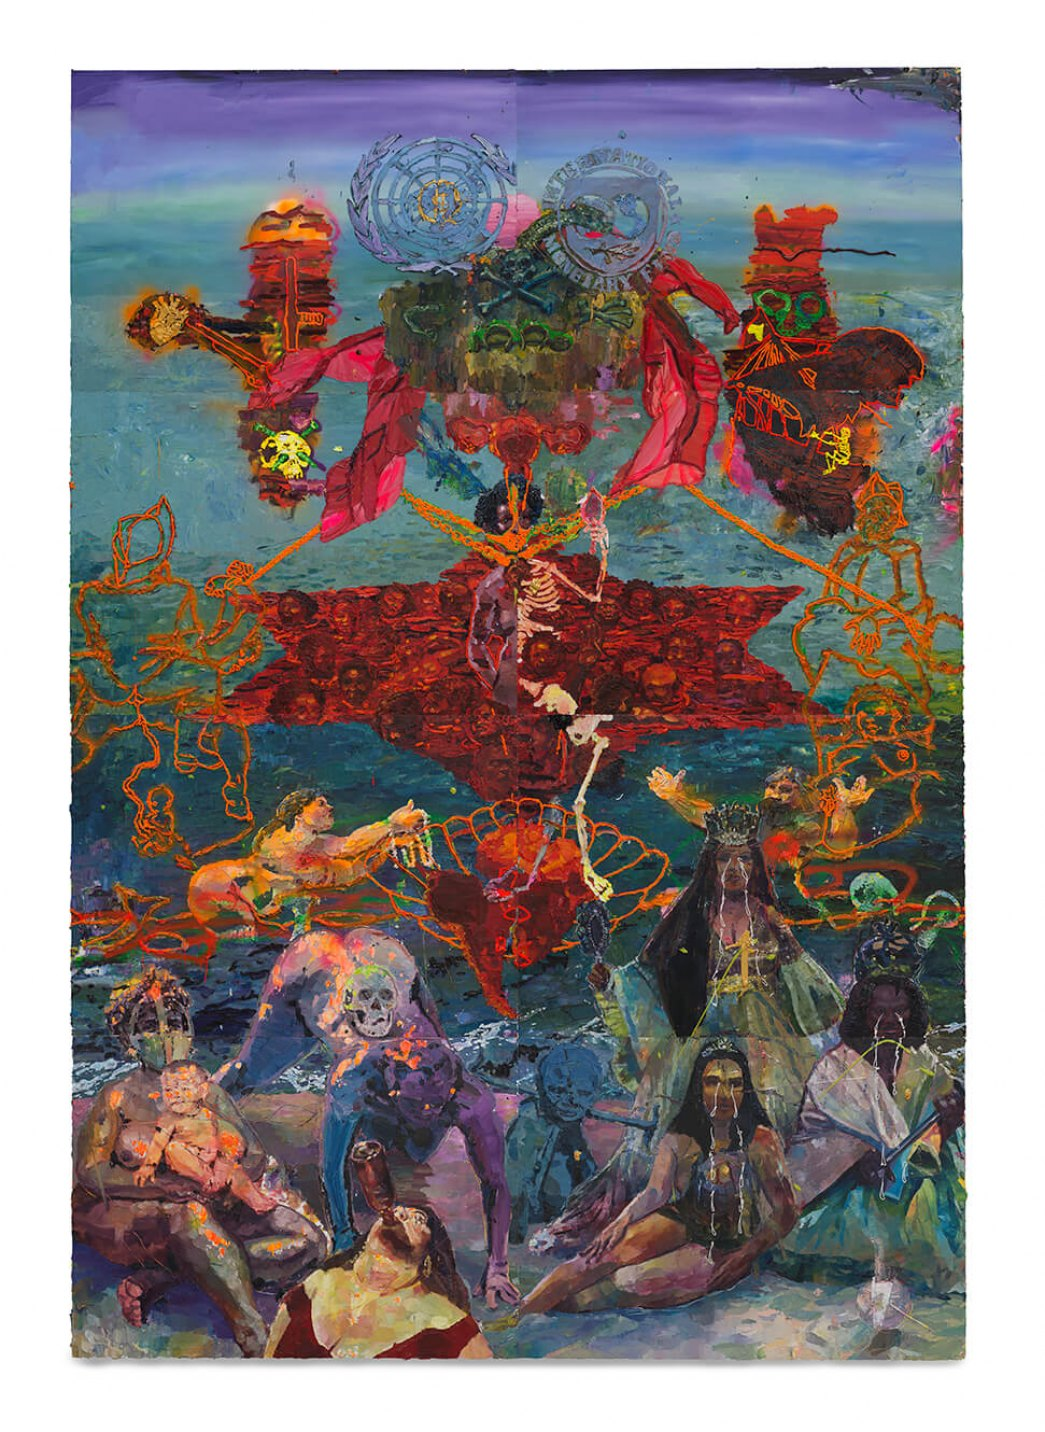 Thiago Martins de Melo,<em>The Azimutal Division of the World and the Birth of the Slave Venus amidst the Wailing of the Ladies of the Atlantic</em>,2013, oil on canvas, 520×360 cm - Mendes Wood DM